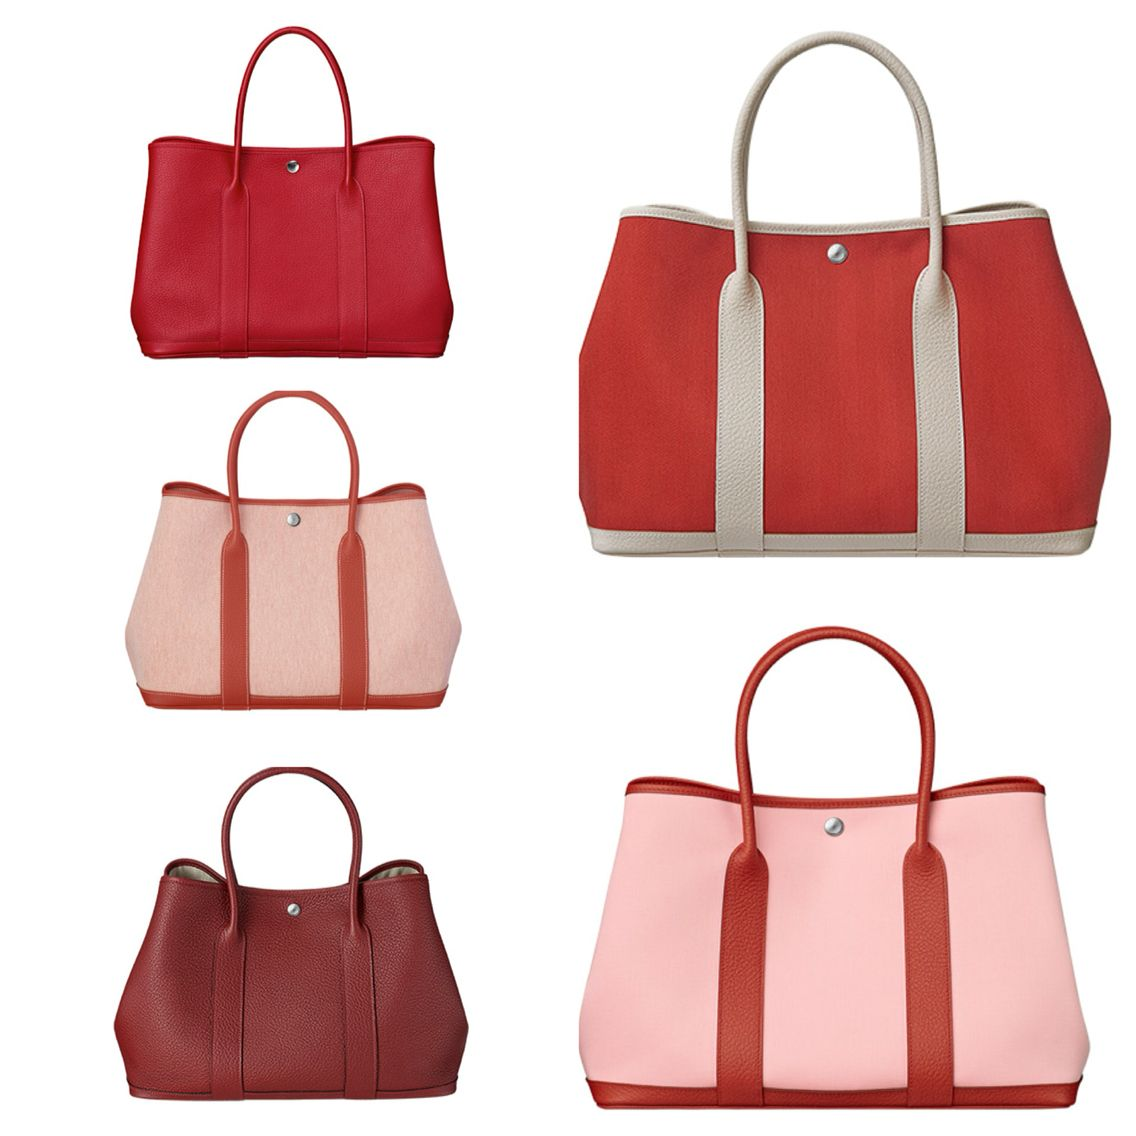 Hermes garden party bag in beautiful shades of red  c2a8892532c75